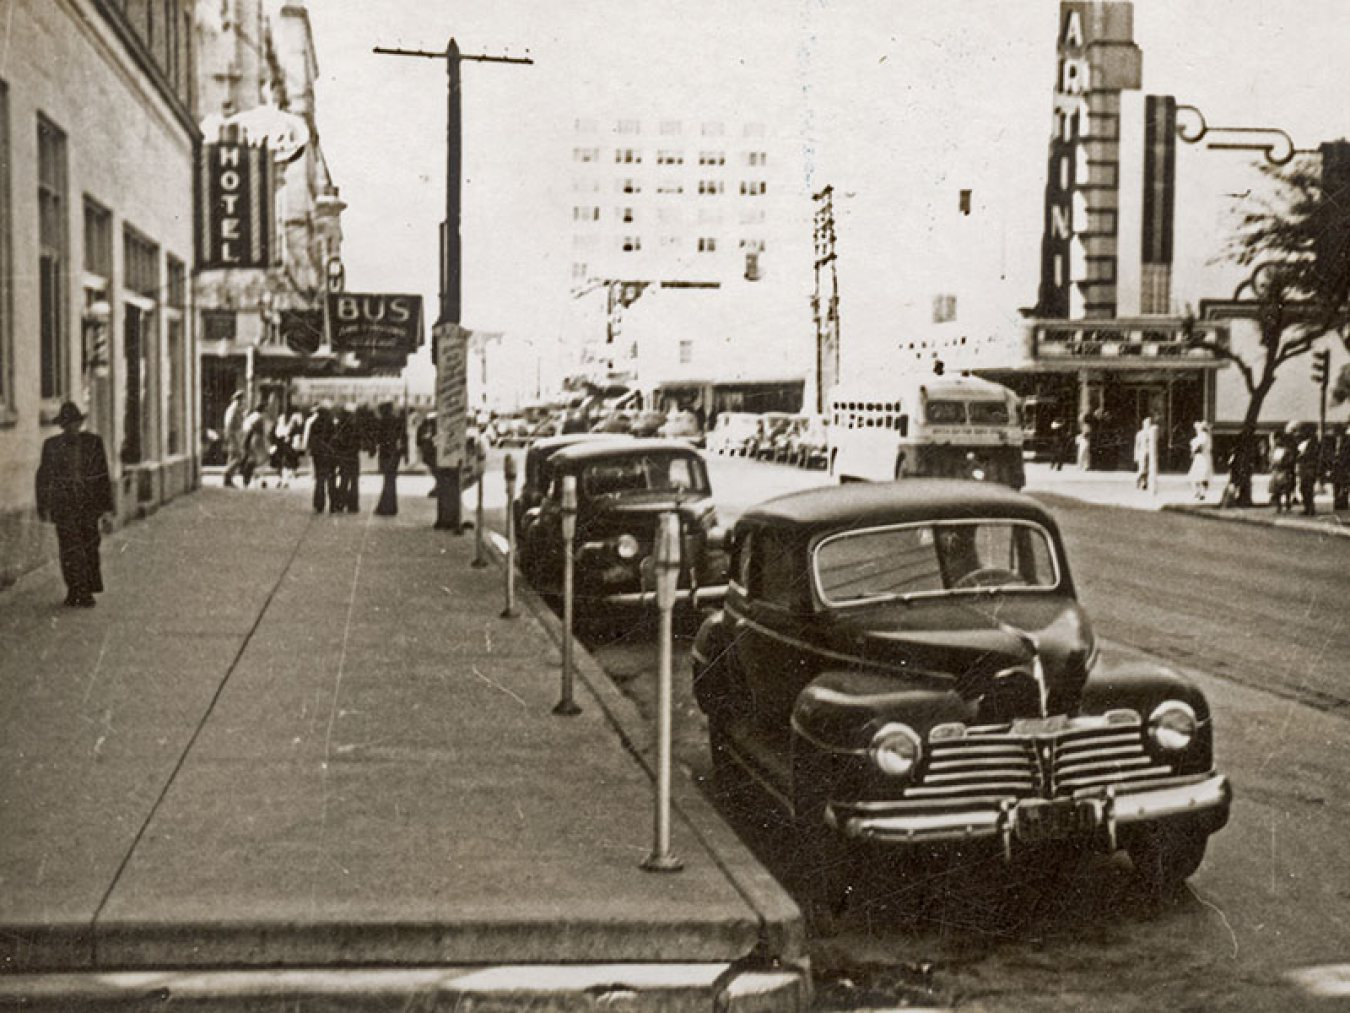 Martini Theater in 1943